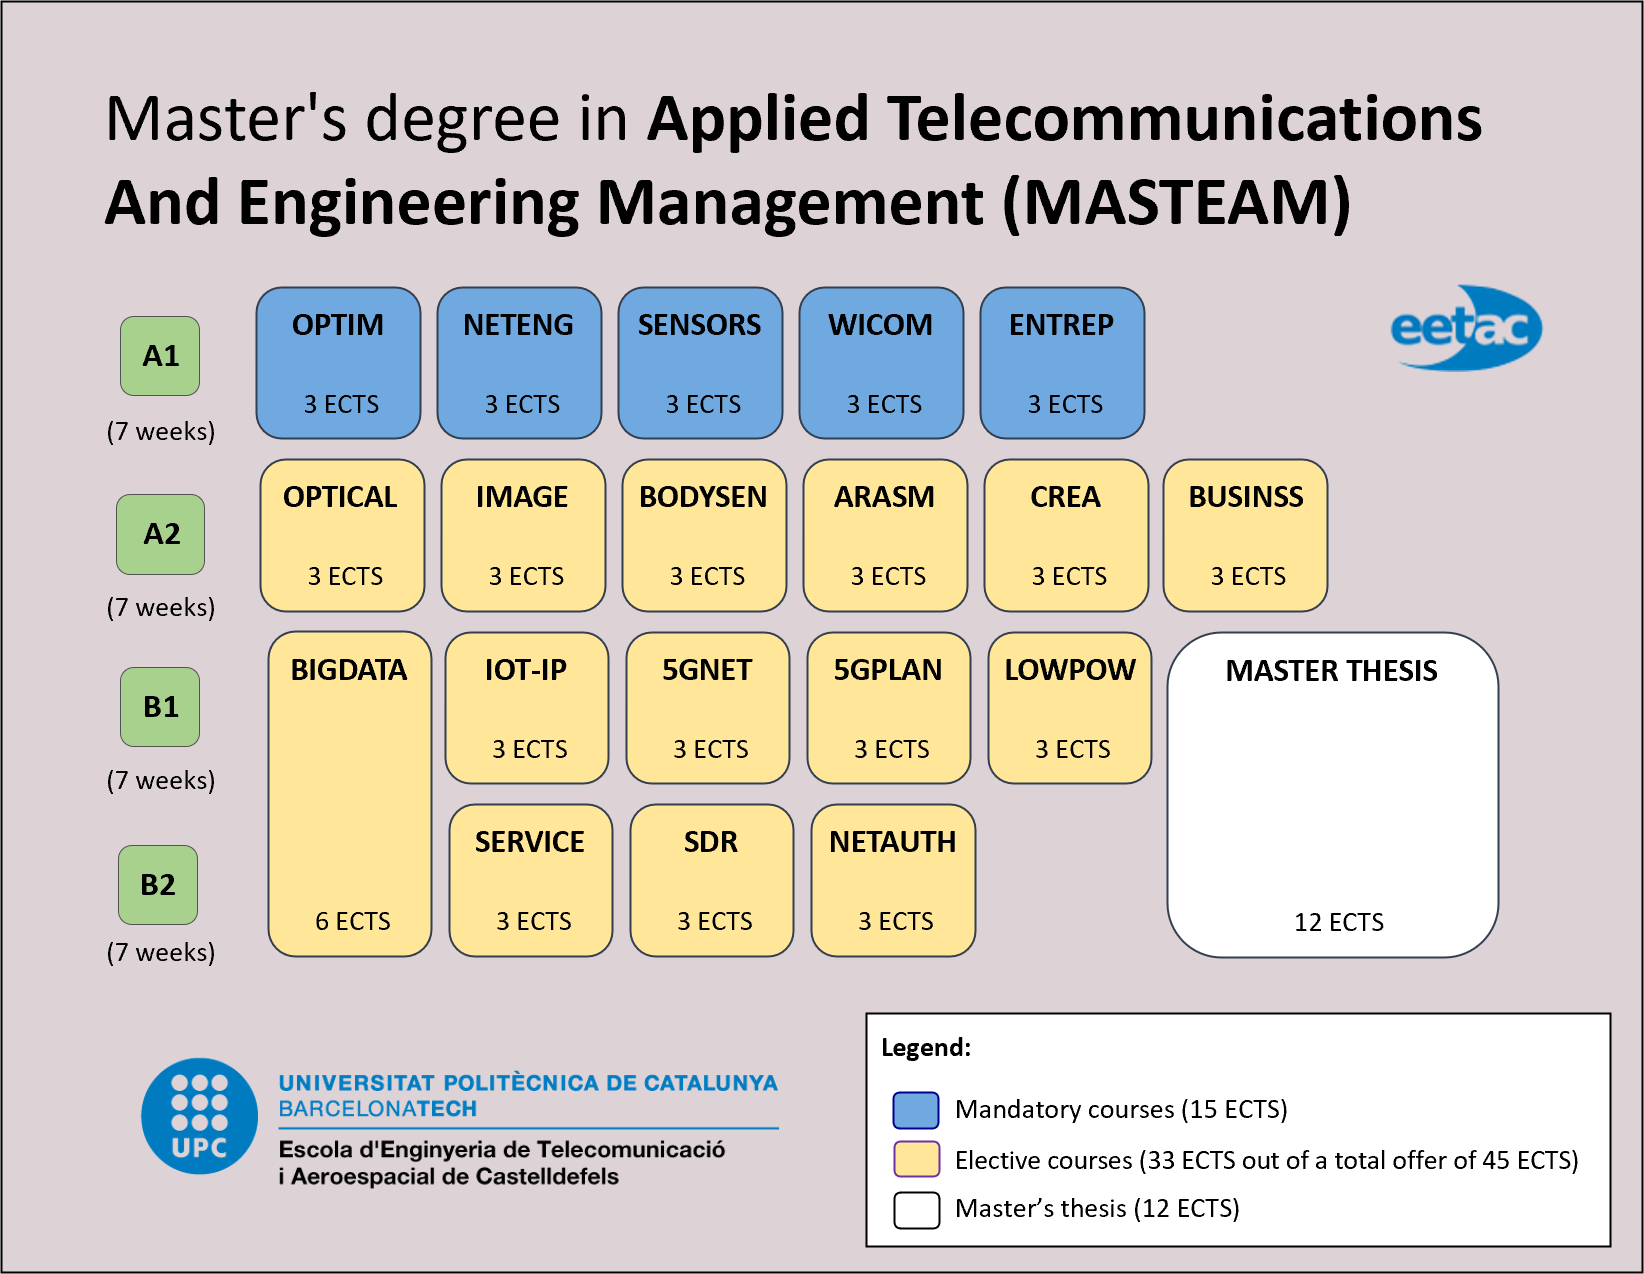 Master's degree in Applied Telecommunications and Engineering Management